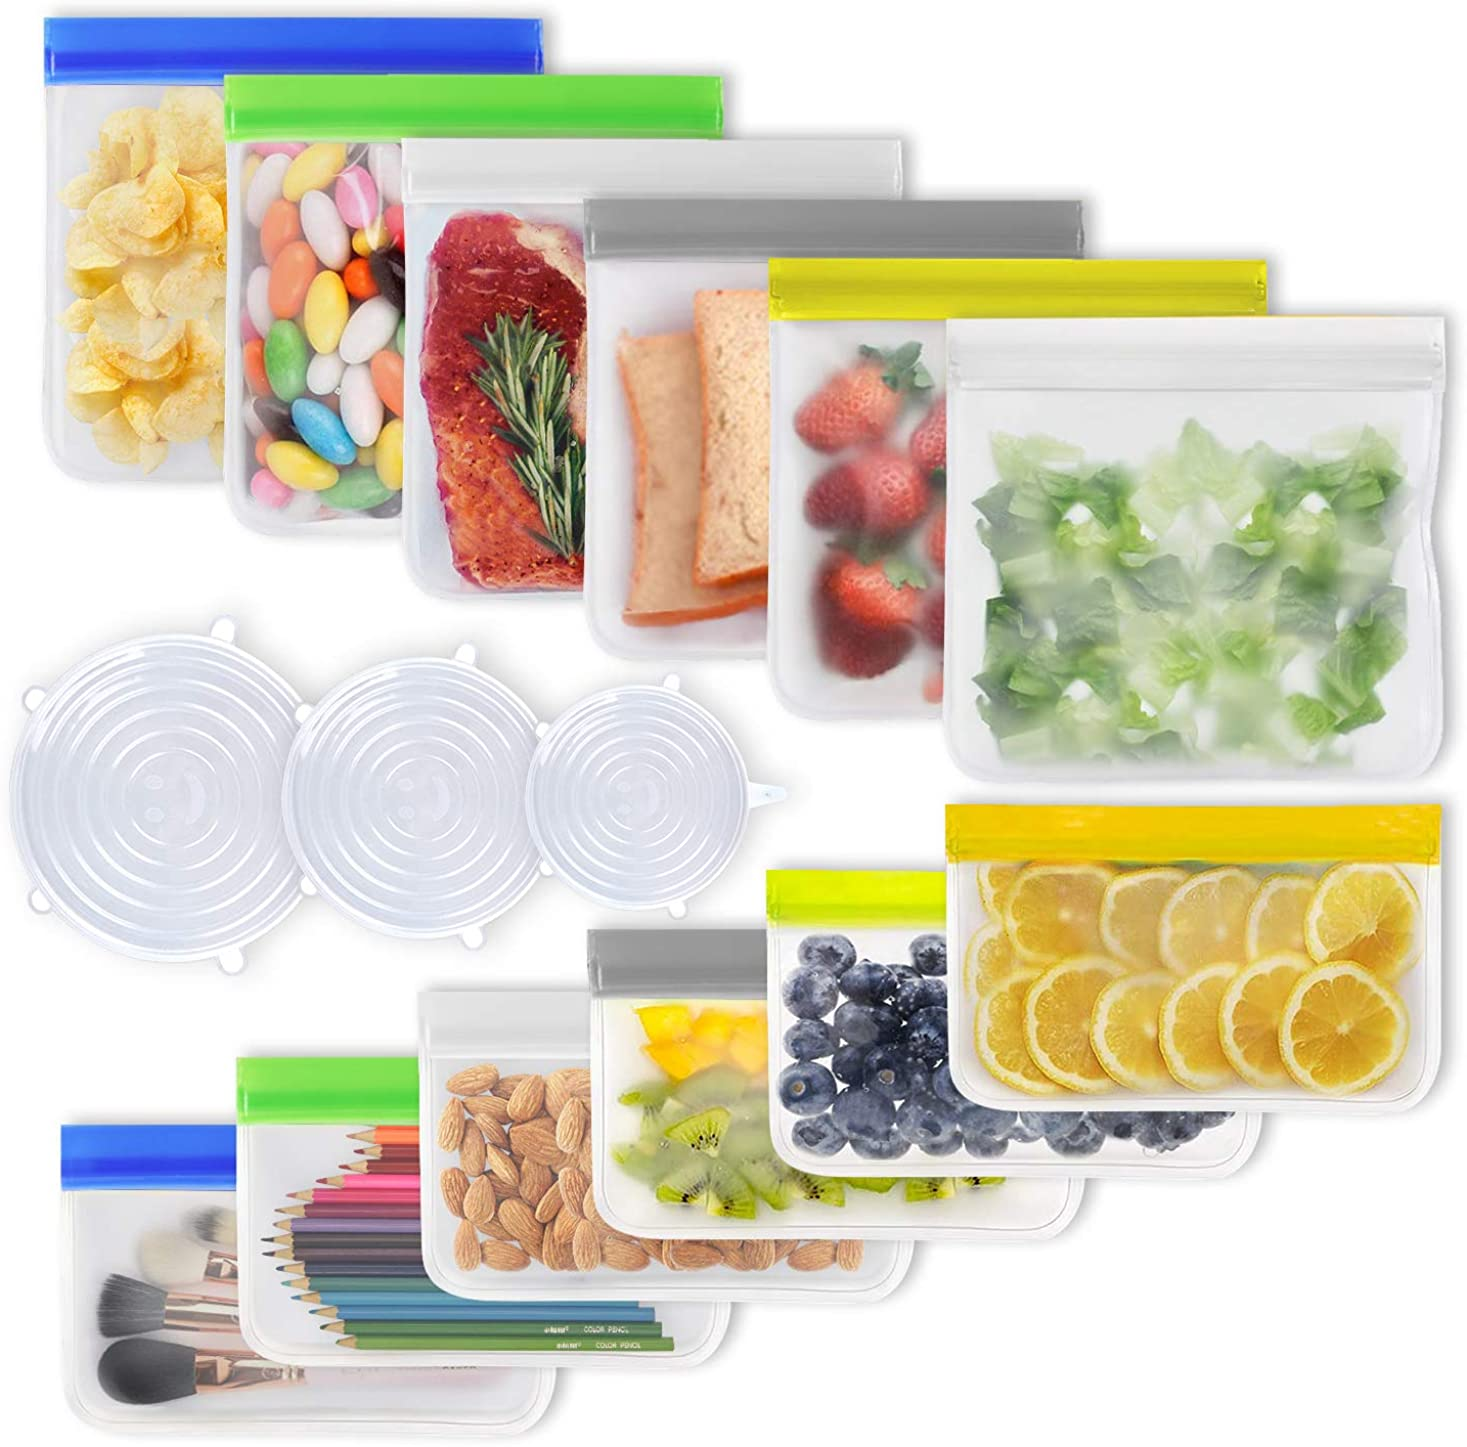 Reusable Food Storage Bags & Silicone Stretch Lids -15 pack (6 Sandwich + 6 Snack + 3 Lids)-Freezer Safe BPA Free PEVA